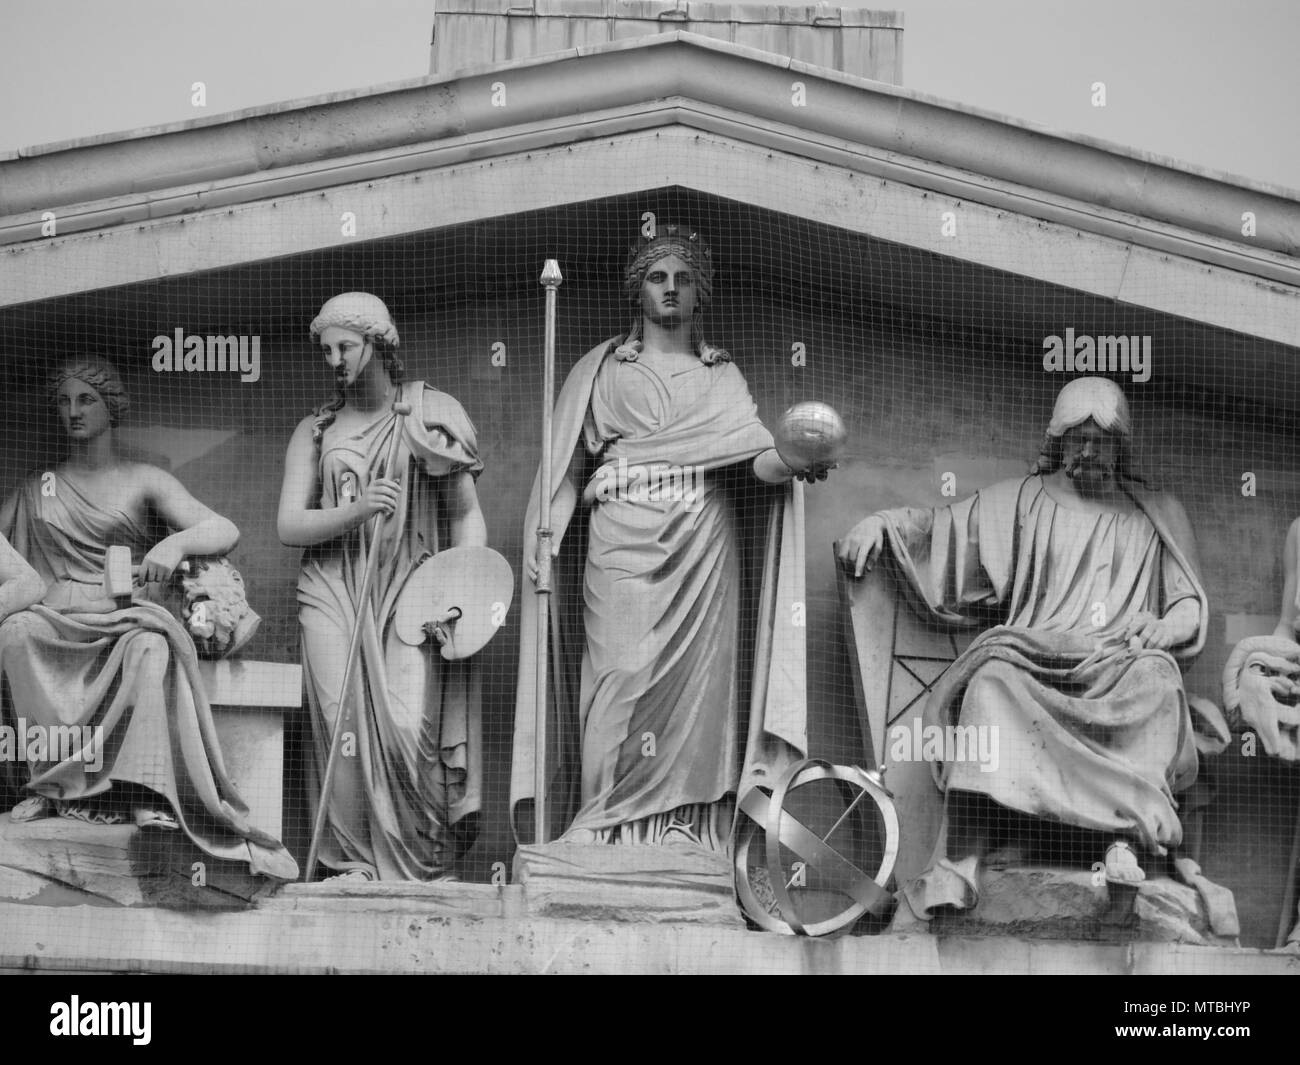 British Museum, Pediment from Great Russell Street, London, England - Stock Image